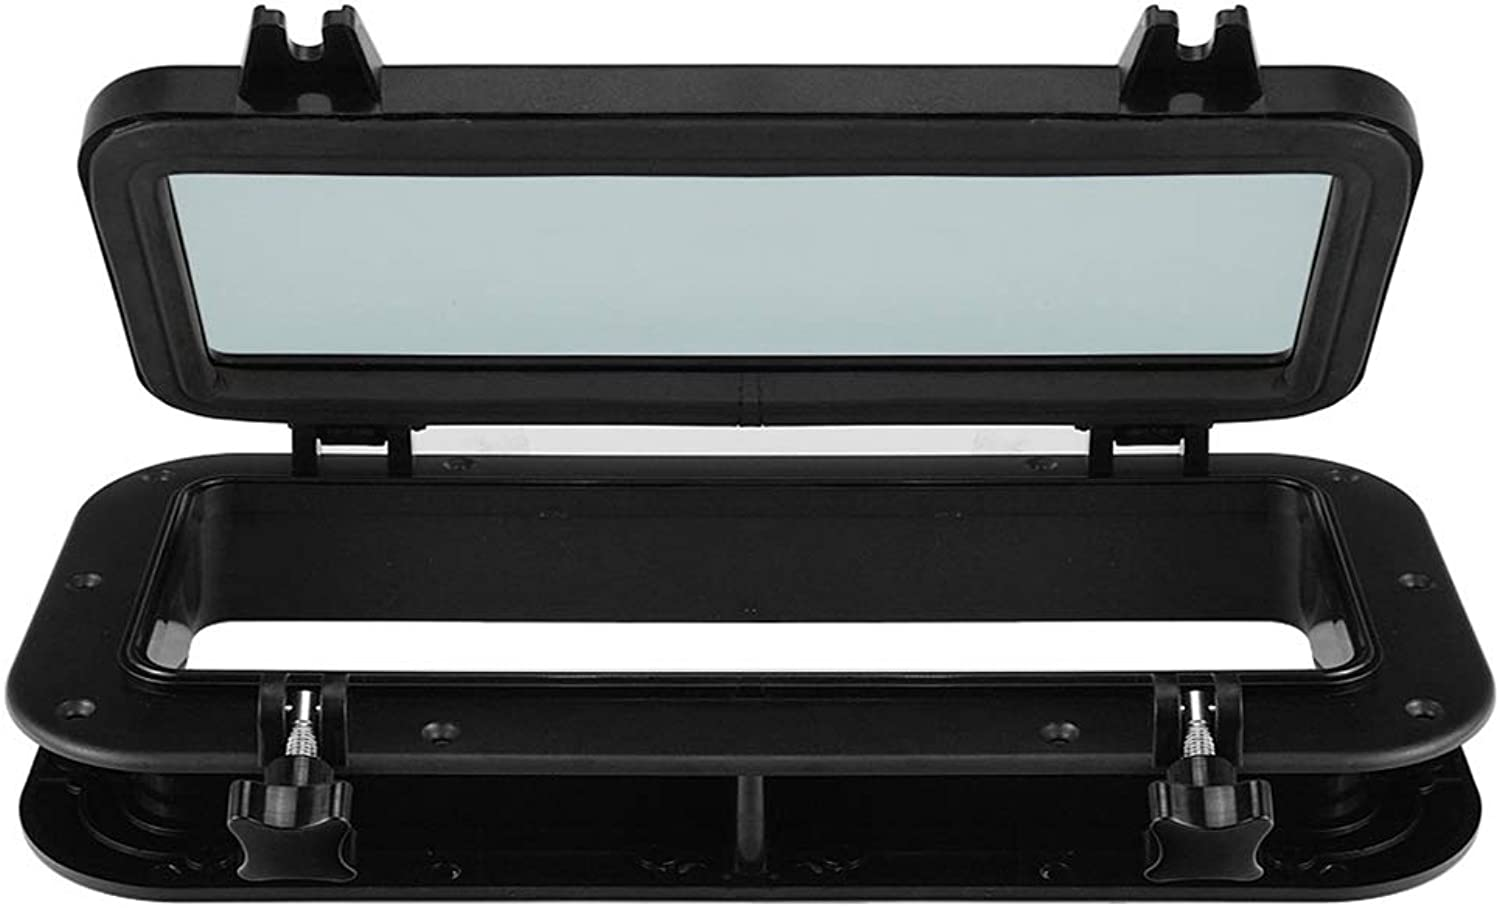 Ller76 Skylight Cover ABS Yacht Car Easy to Install Replacement Porthole Black Sturdy Window Parts AntiAging Boat Ship Durable Rectangular Rubber Seal Waterproof(Black)